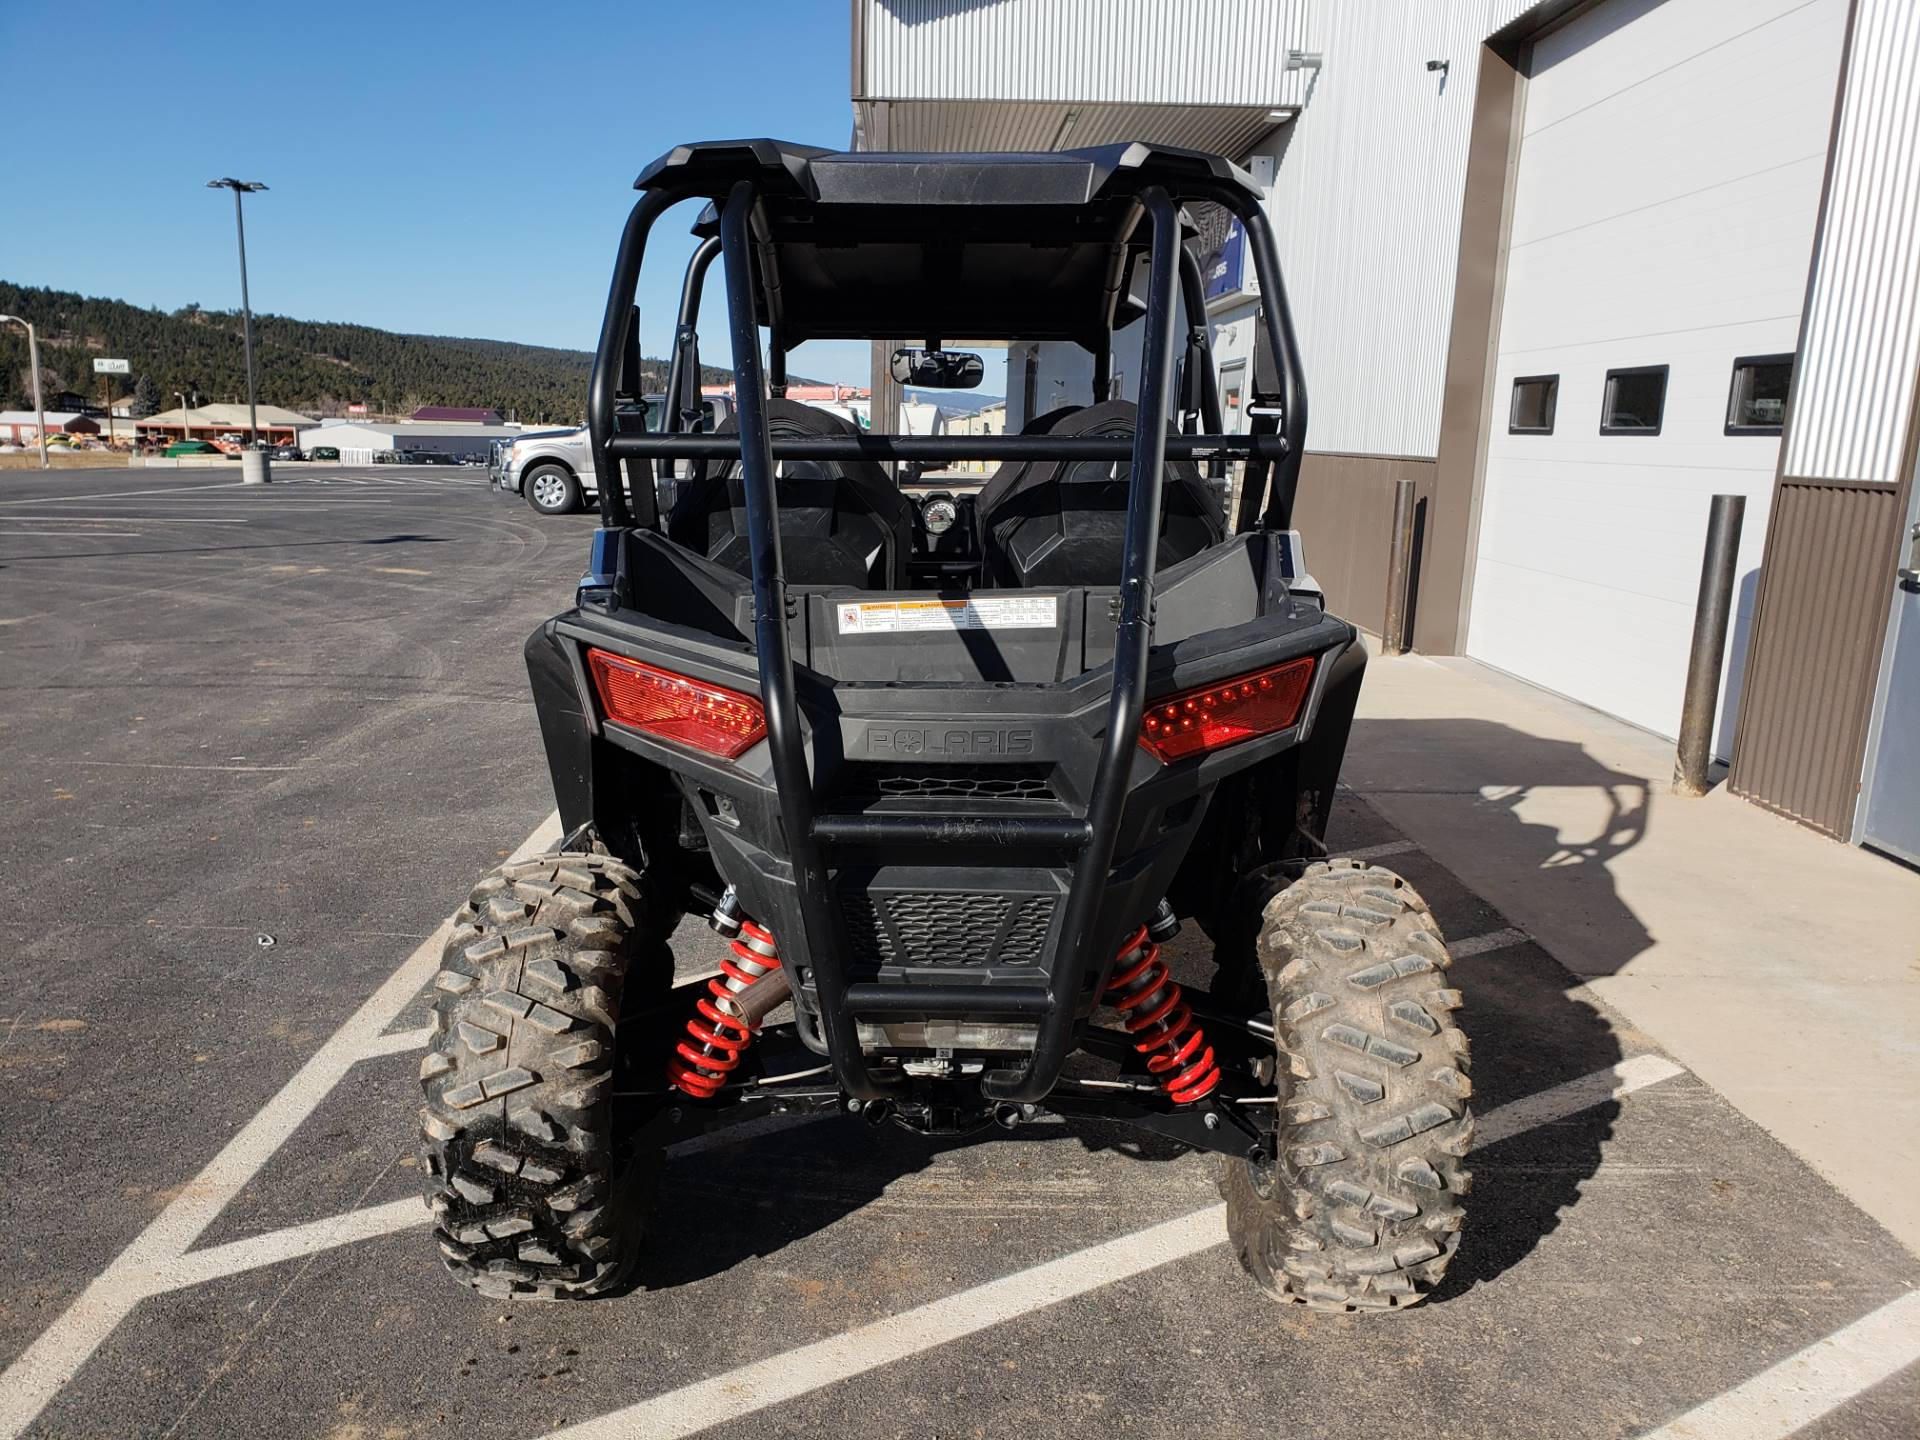 2017 Polaris RZR 4 900 EPS 4